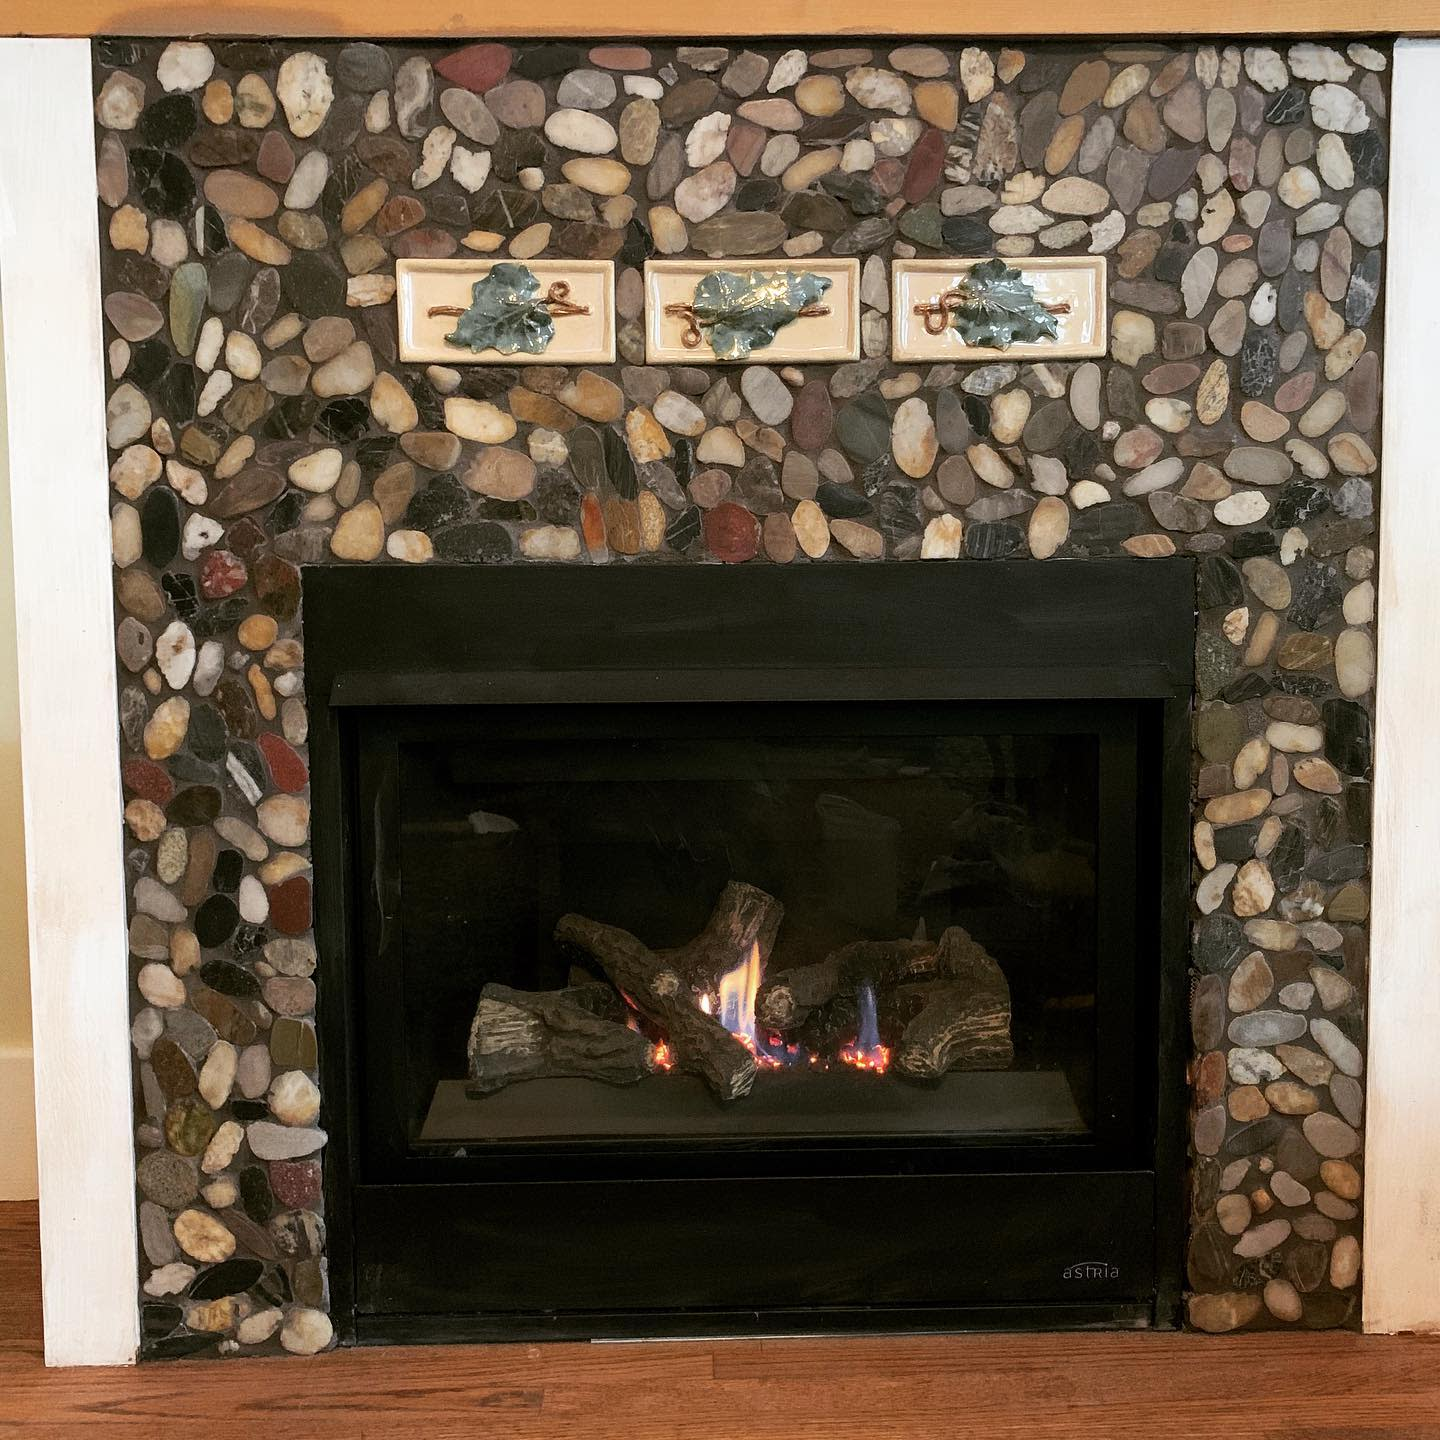 Mosaic Fireplace Tile Ideas -shattered.images